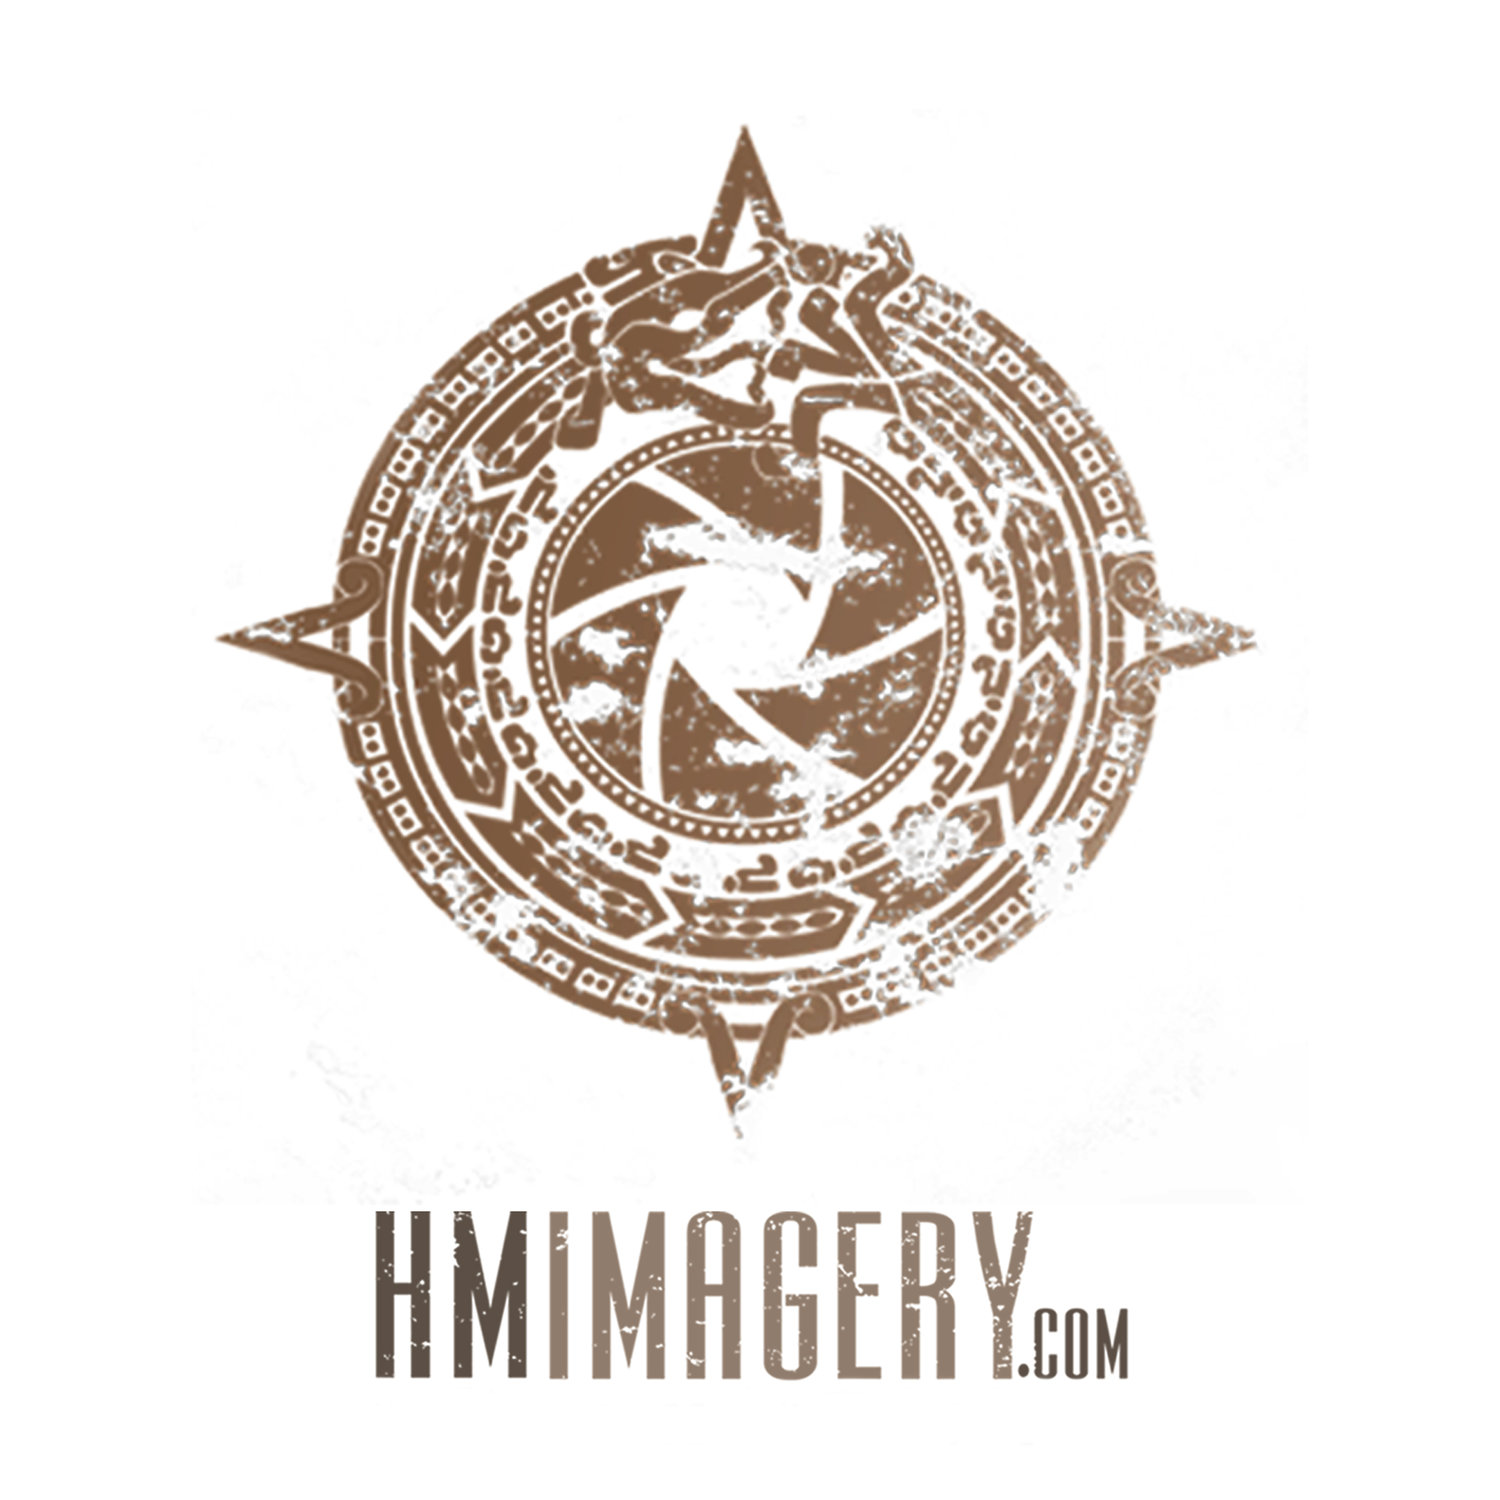 Hugo Martinez